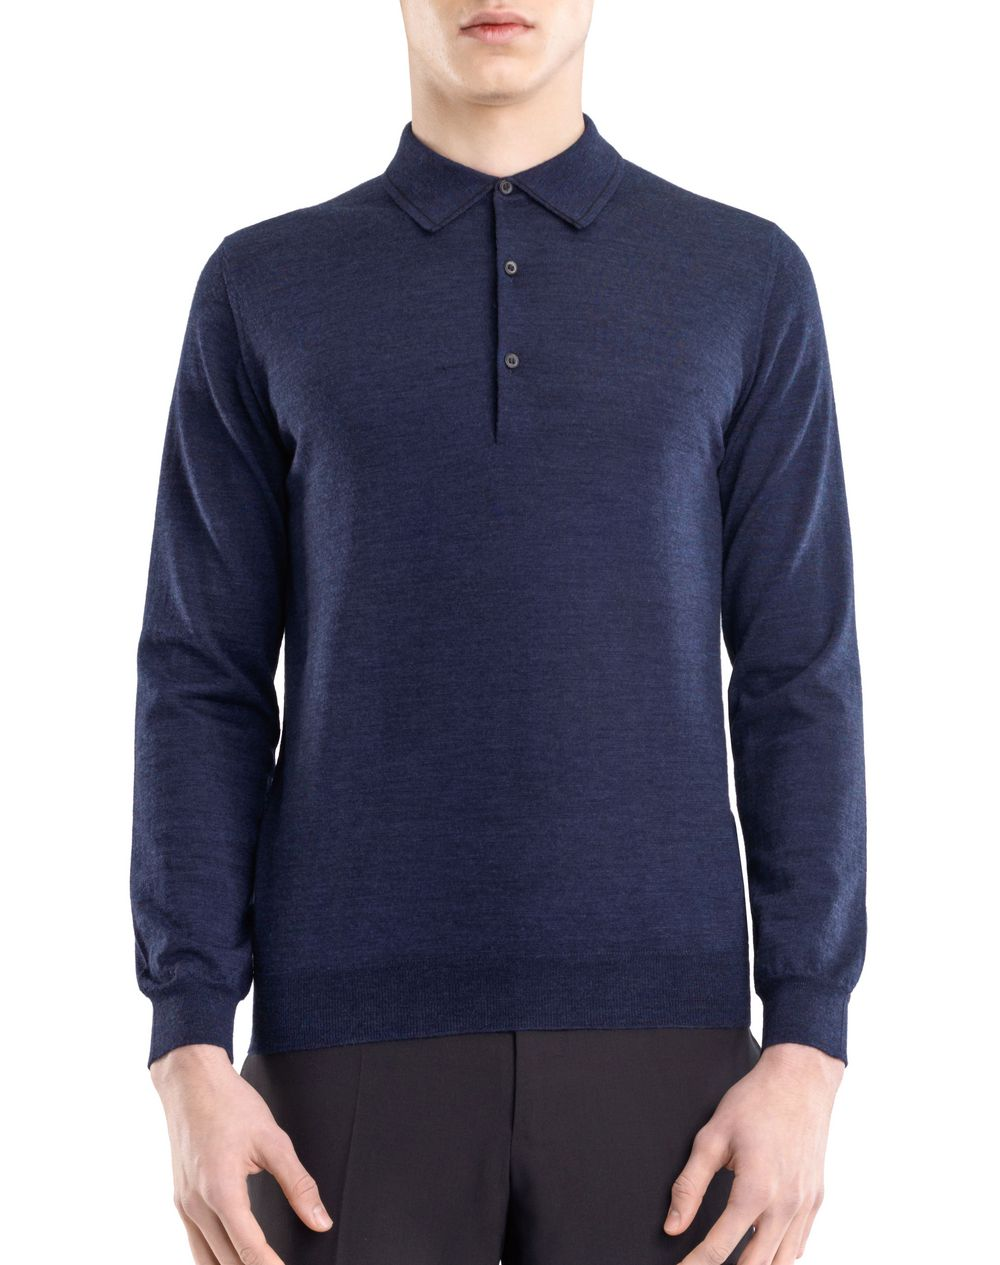 POLO COLLAR SWEATER - Lanvin